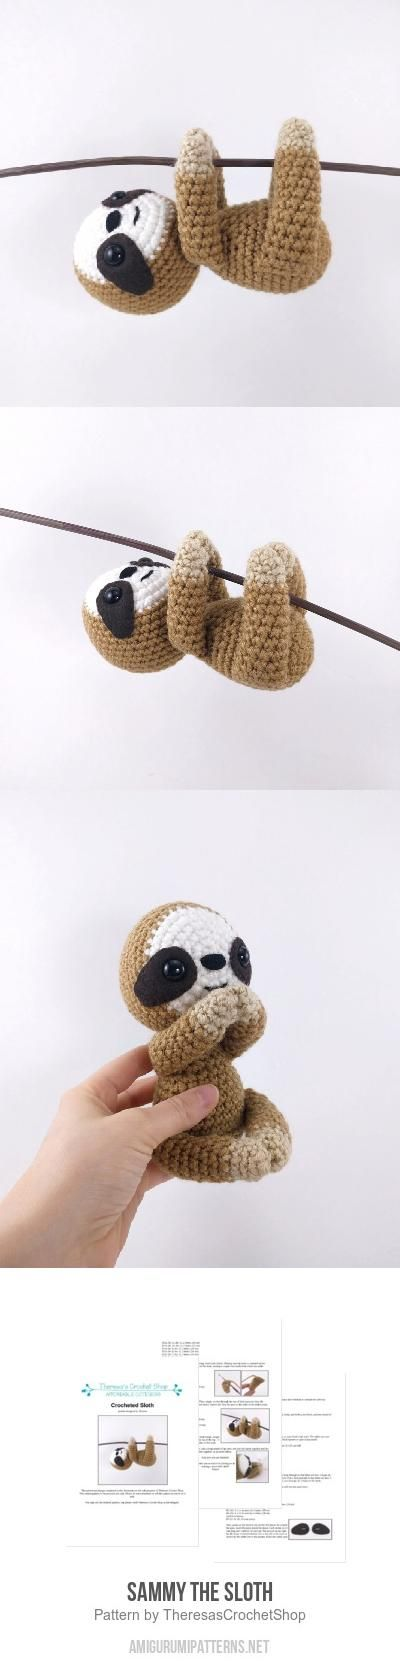 Sammy the Sloth amigurumi pattern